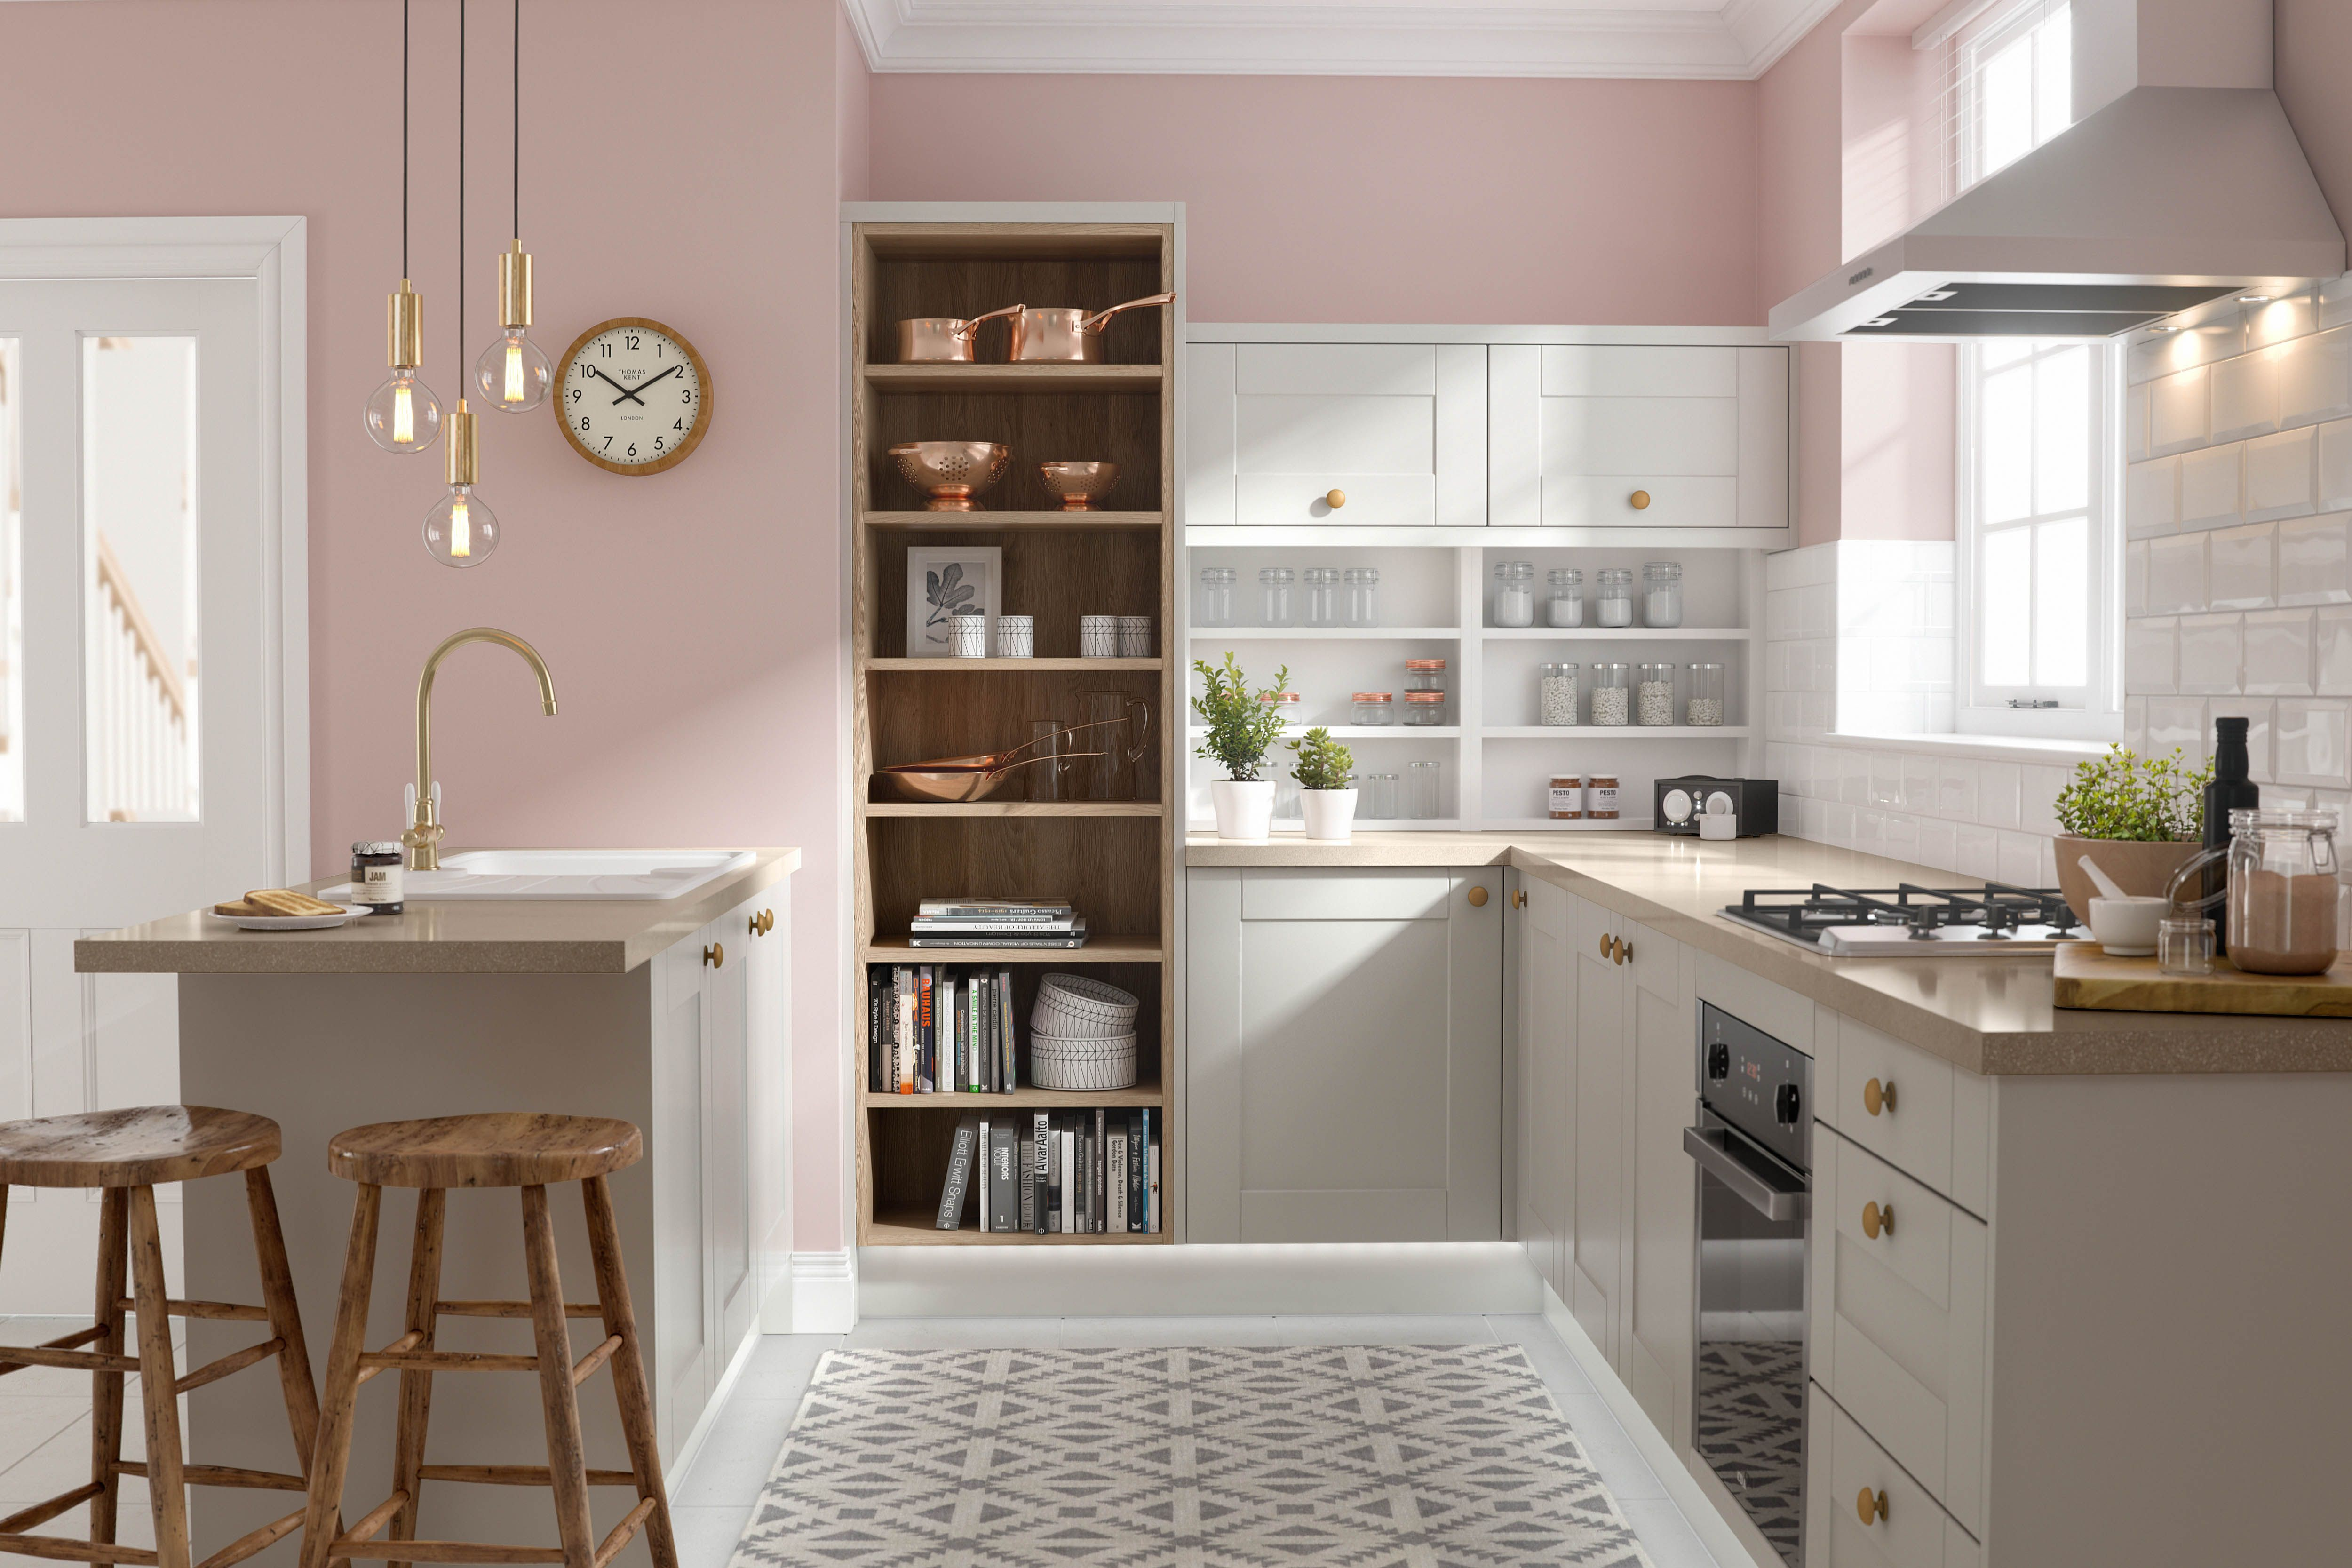 Zerchoo Lifestyle 6 Things To Consider For A Kitchen